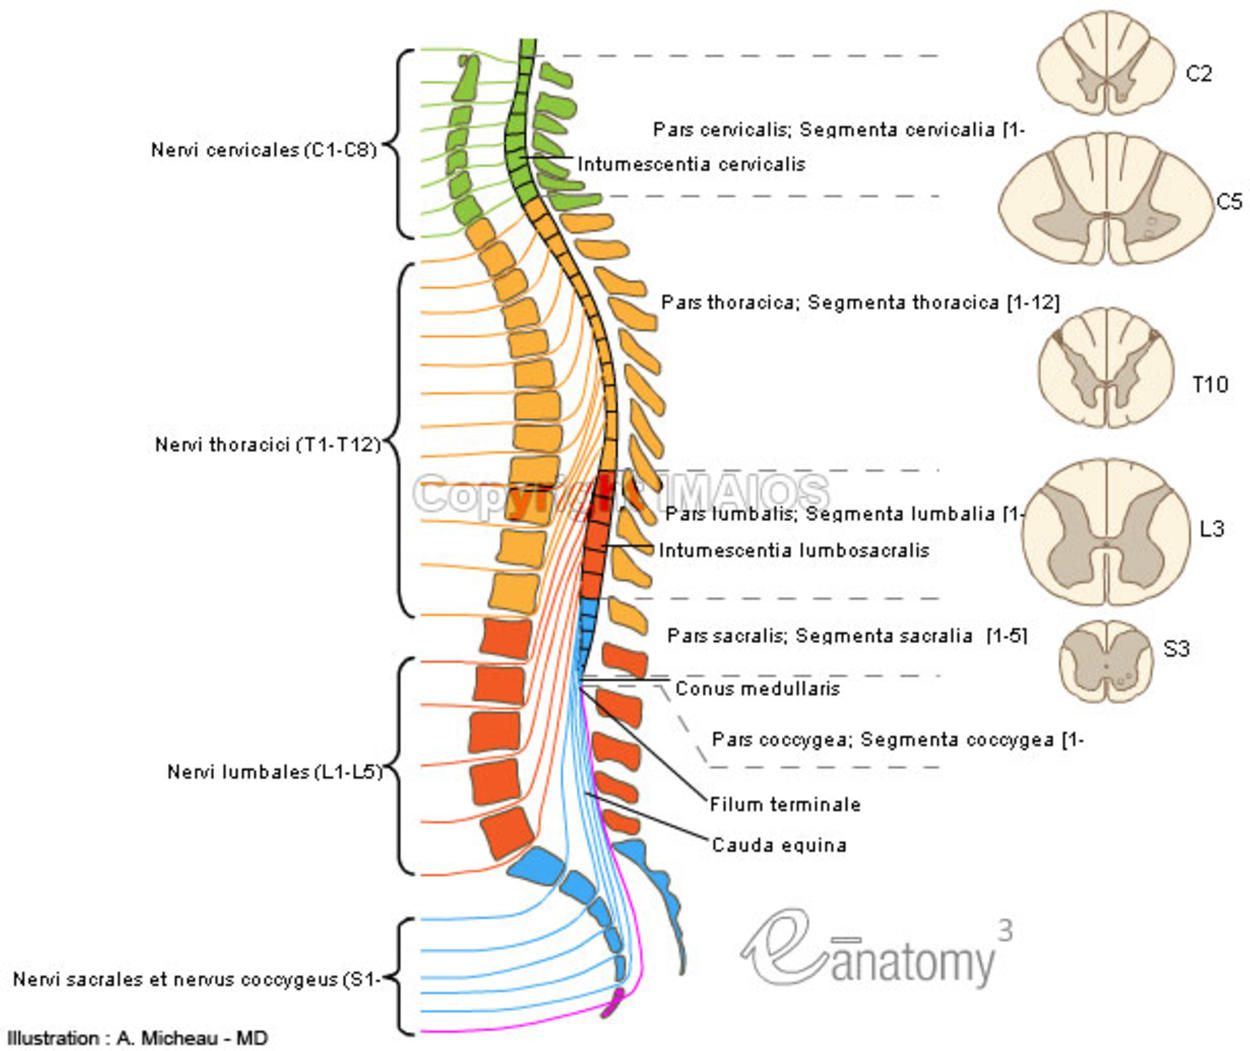 Anatomy - Spinal cord : Cervical enlargement,  Lumbosacral enlargement,  Medullary cone,  Spinal part of filum terminale, Cauda equina, Spinal nerves